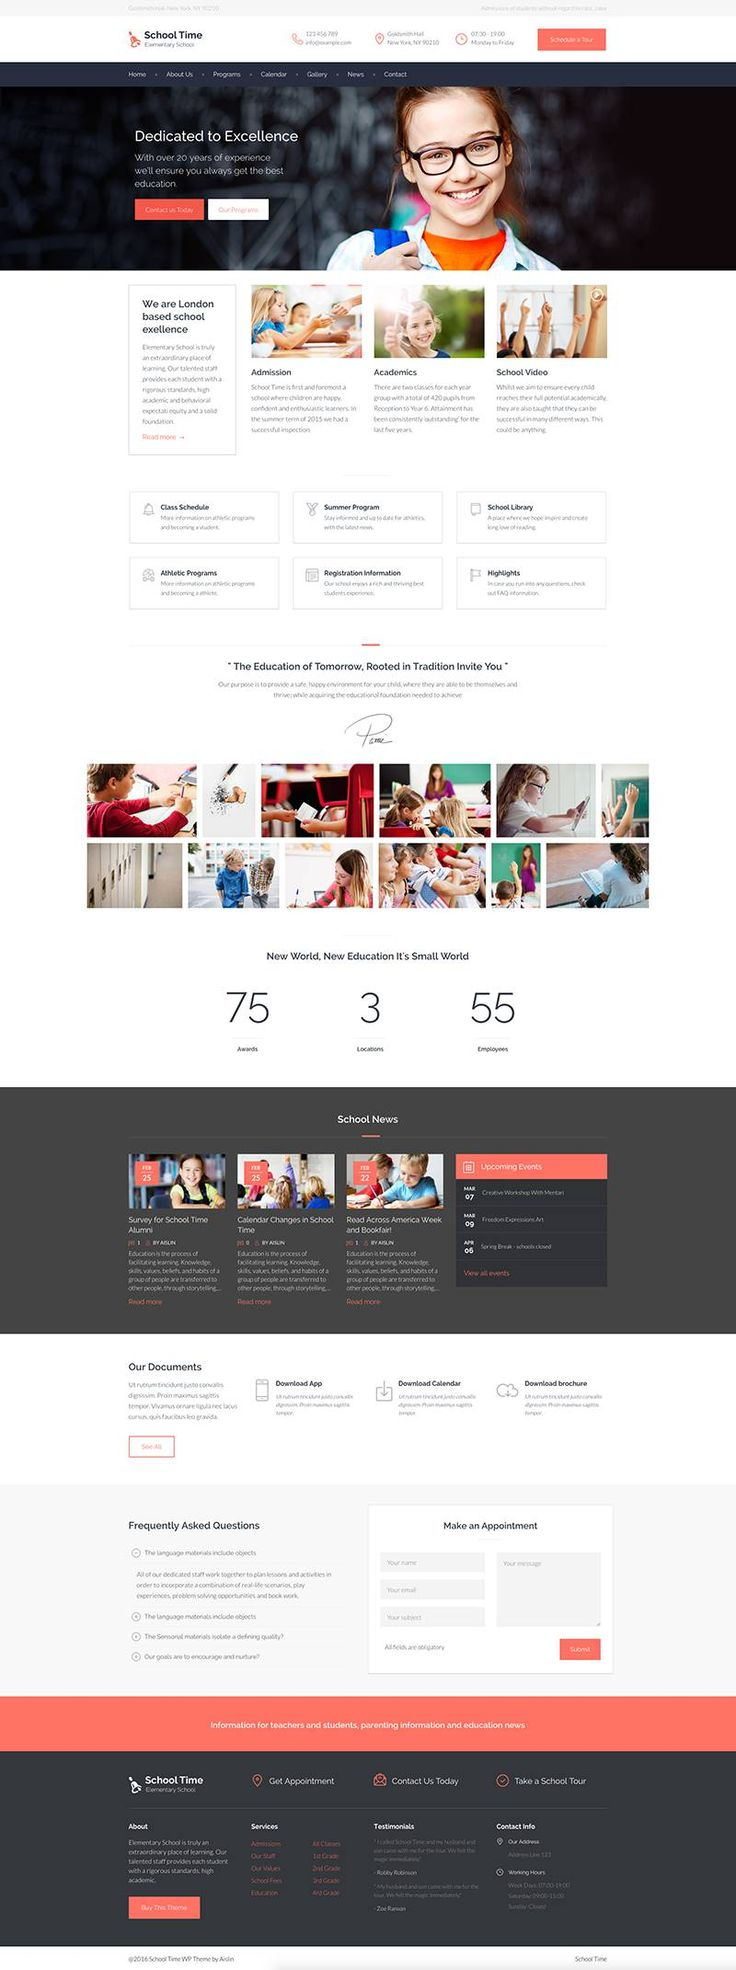 School Time is a fully functioning website template for WordPress to showcase basic admissions, location and staff info as well as online lessons & courses.